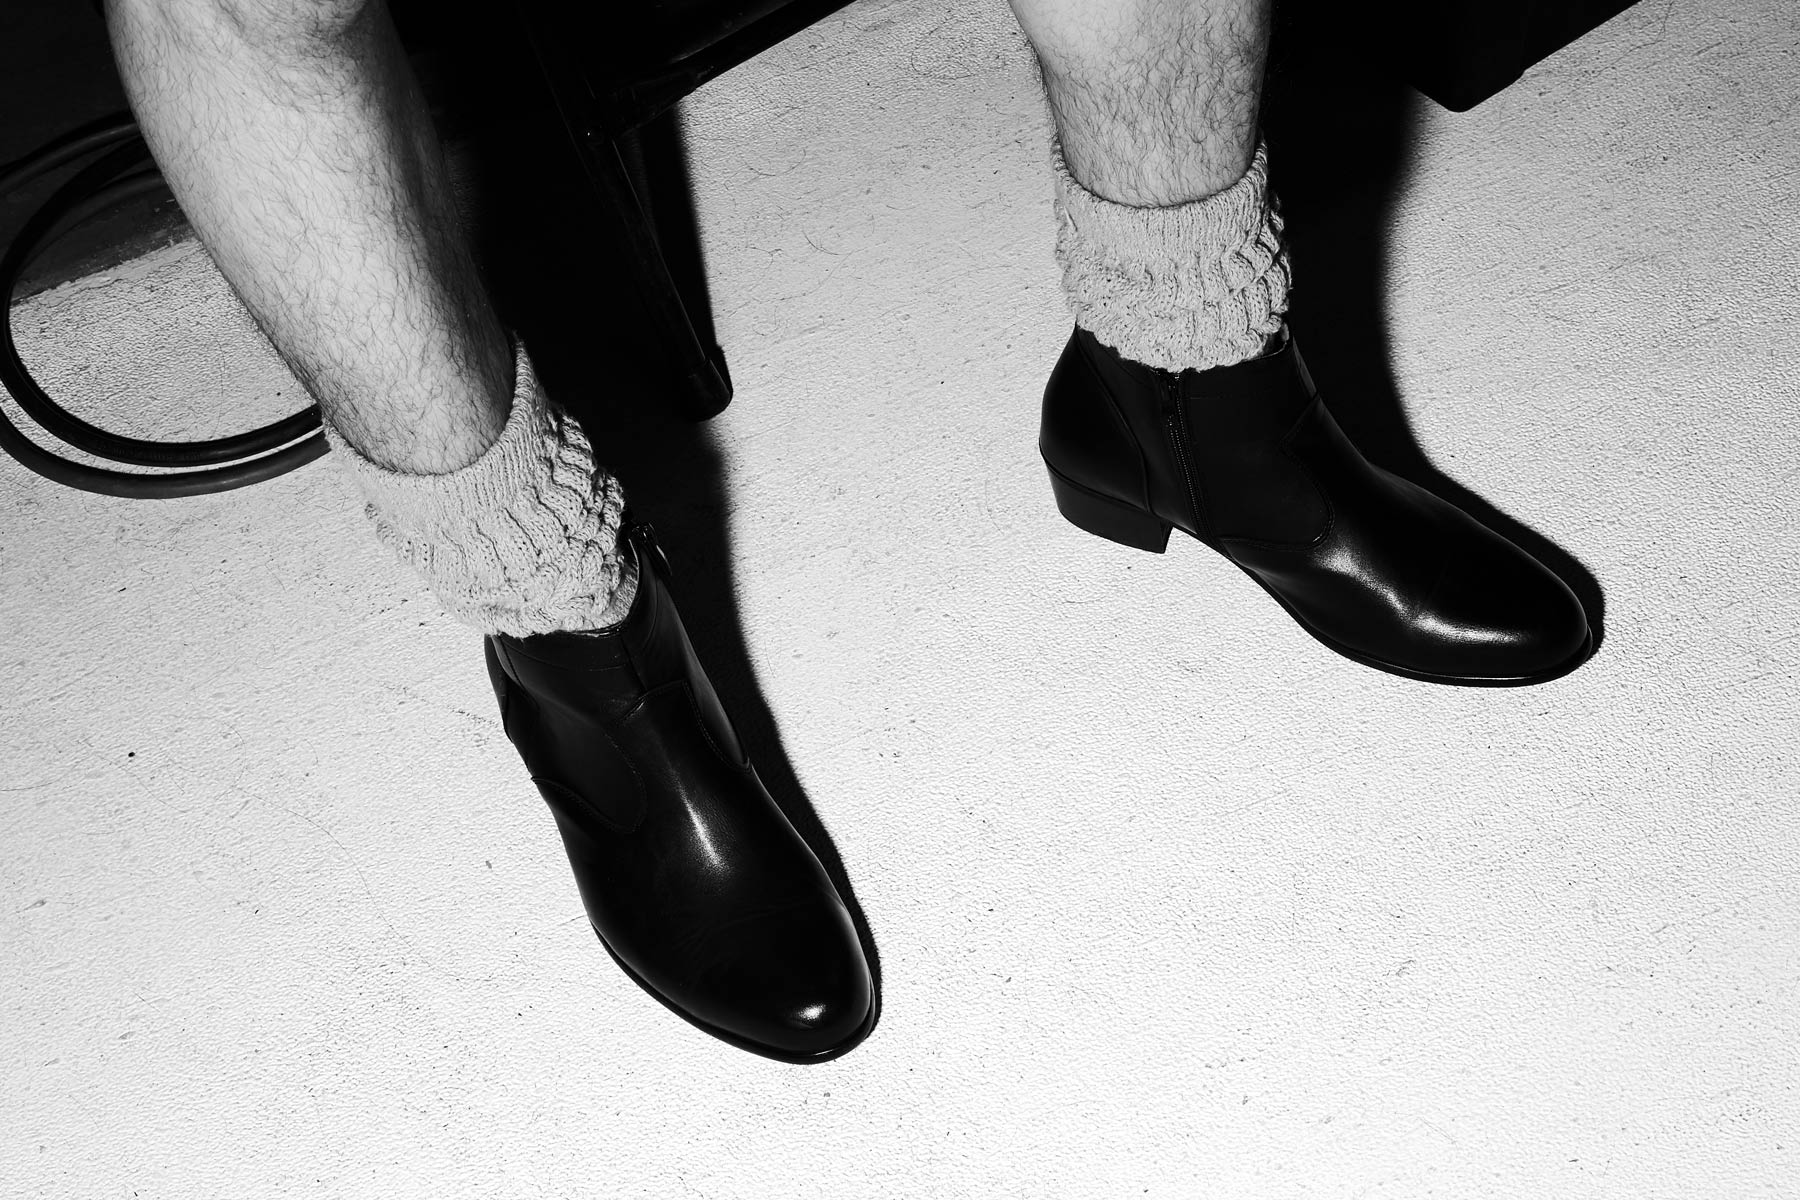 Ankle boots snapped backstage at the Willy Chavarria S/S 2020 collection in New York. Photography by Alexander Thompson for Ponyboy magazine.